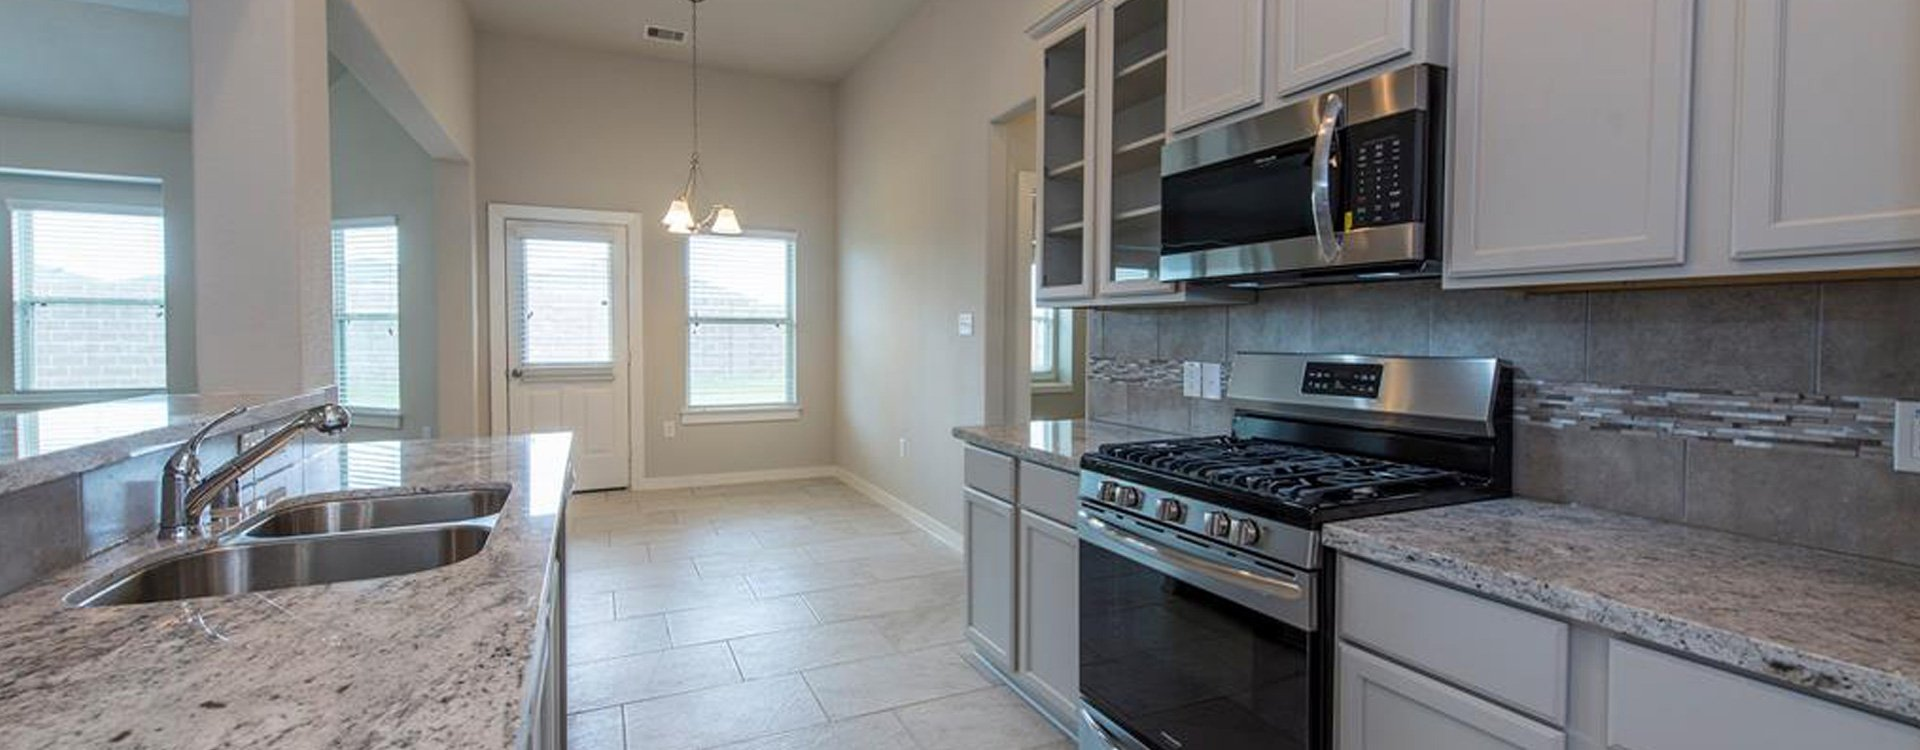 kitchen in new Texas City home for sale